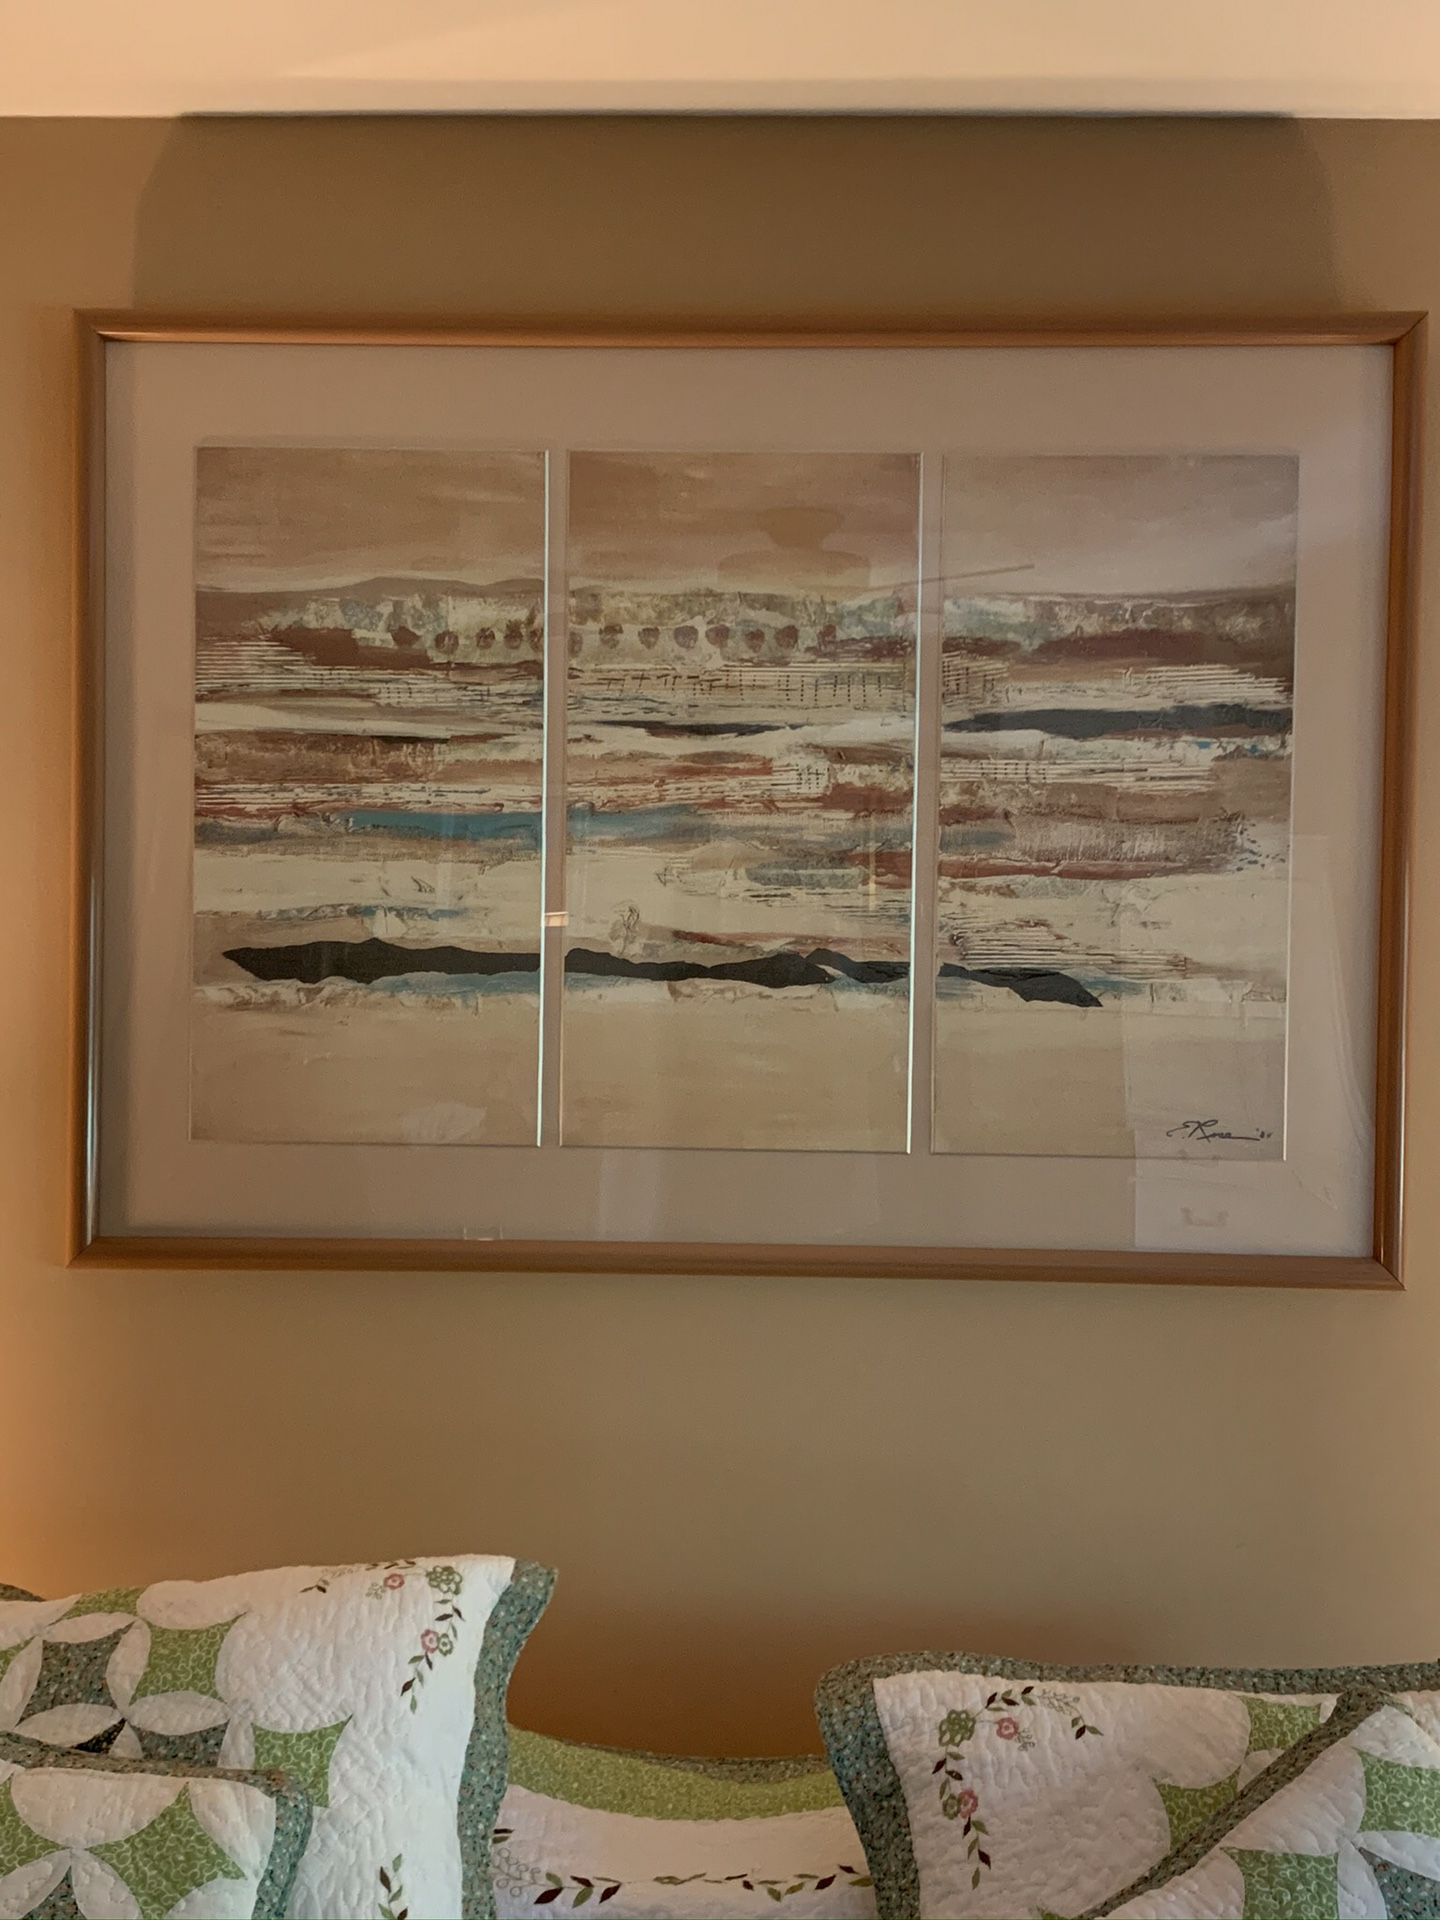 Framed and Matted Landscape Picture